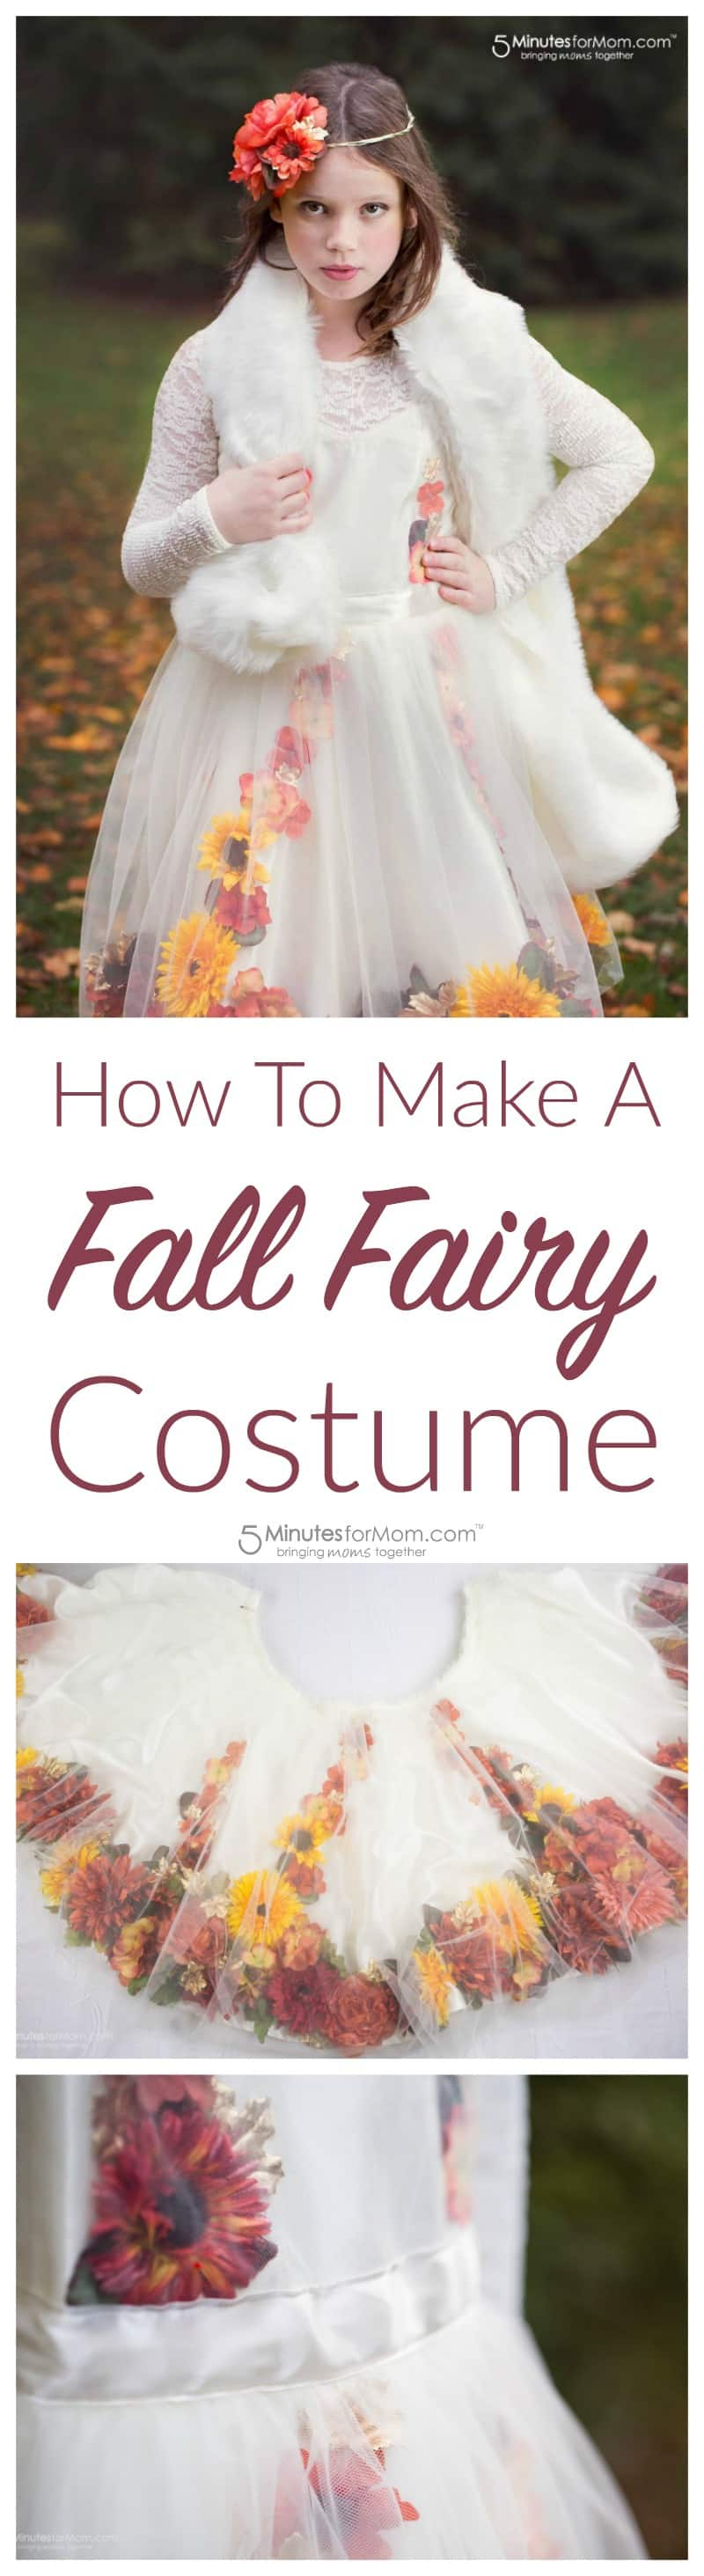 How To Make A Fall Fairy Costume